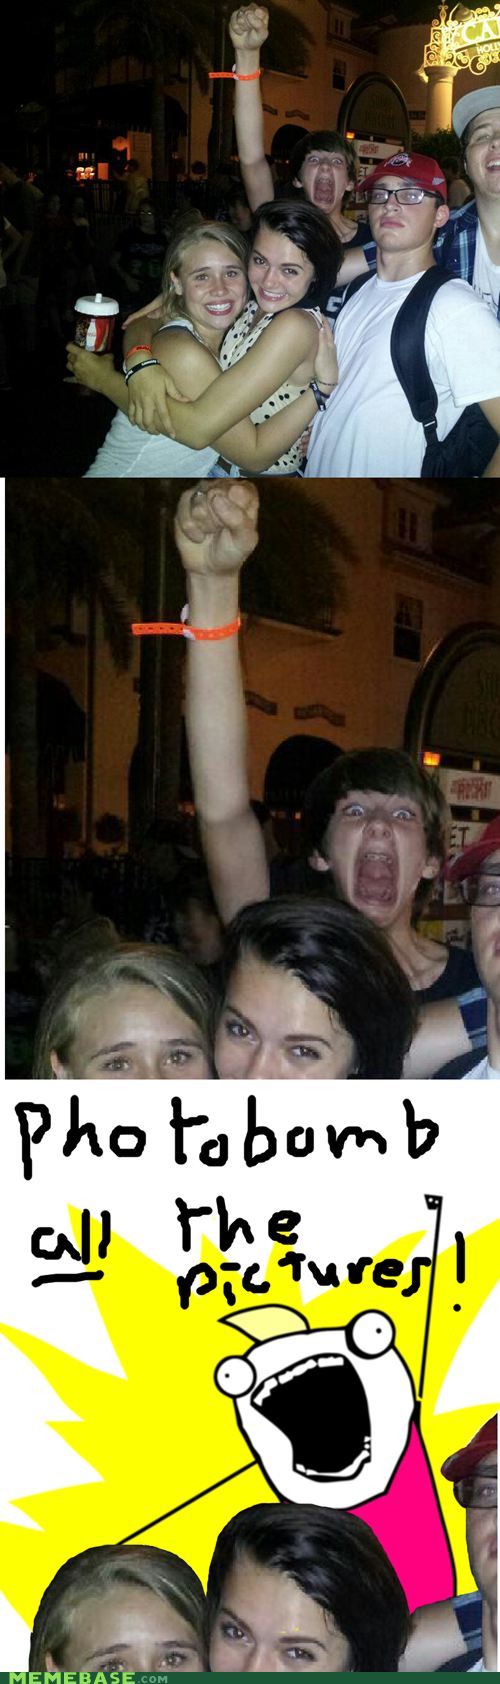 all the things,photobomb,scary,meme